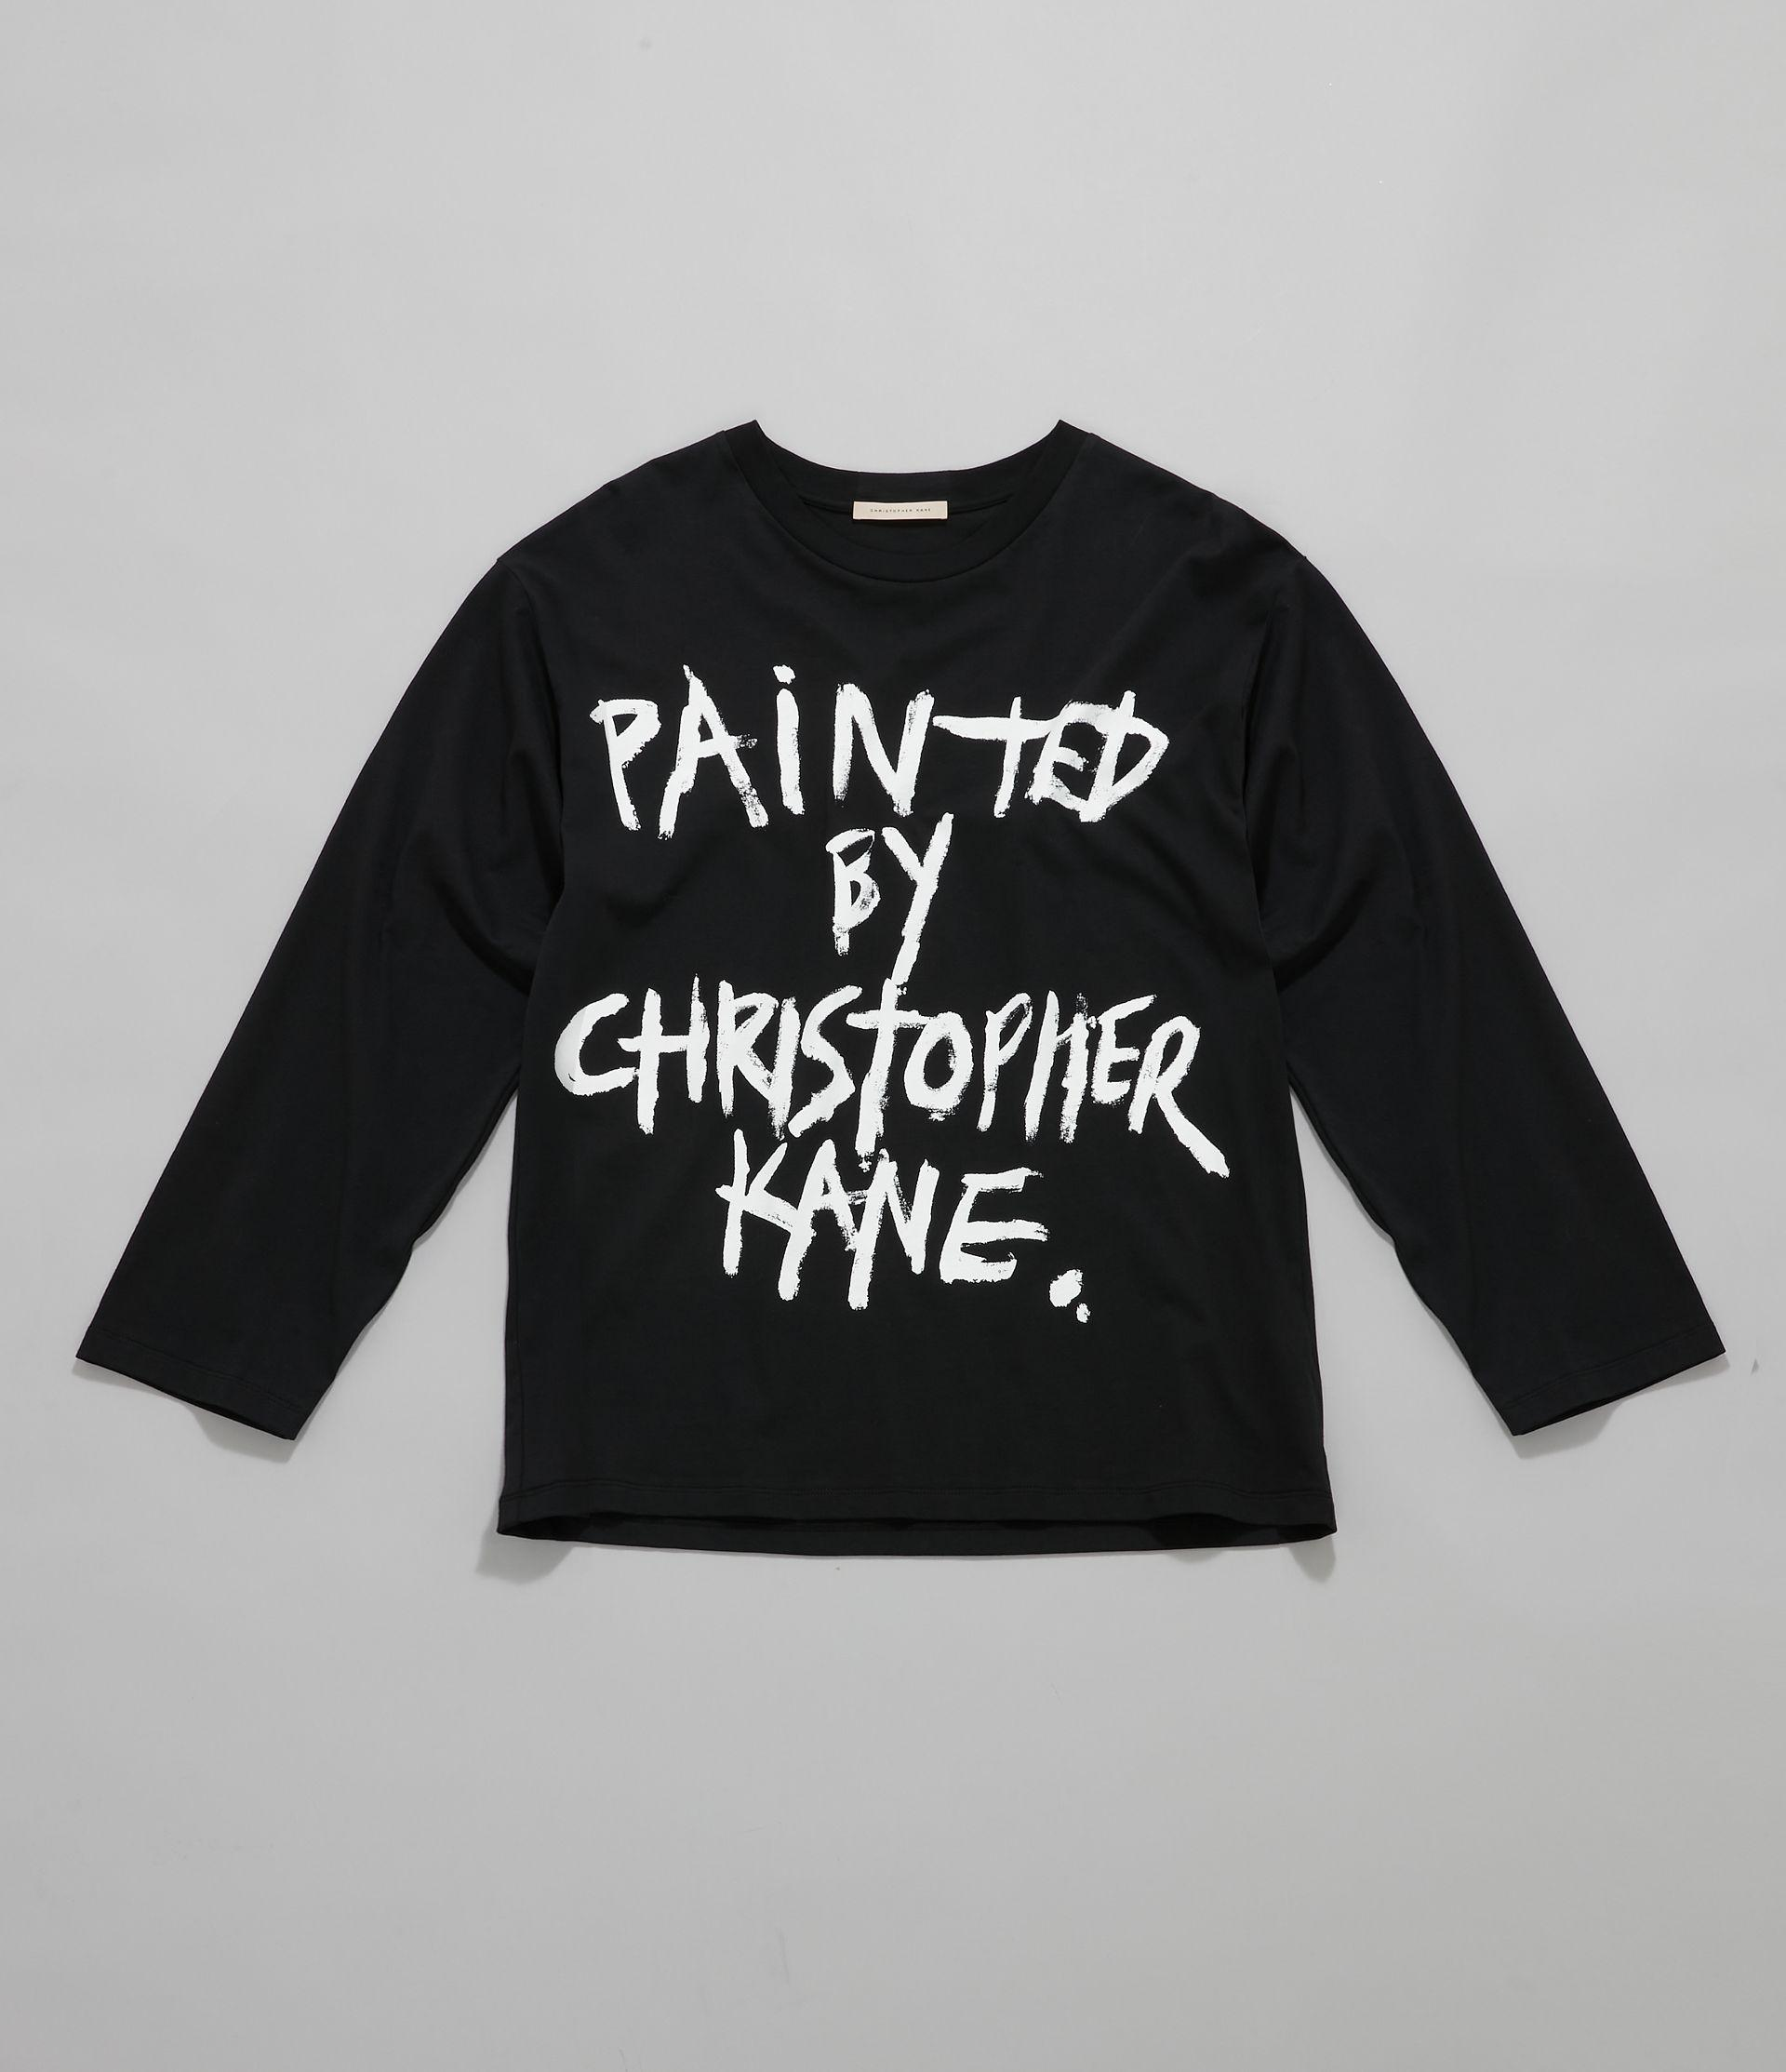 Painted by Christopher Kane long sleeve t-shirt 6